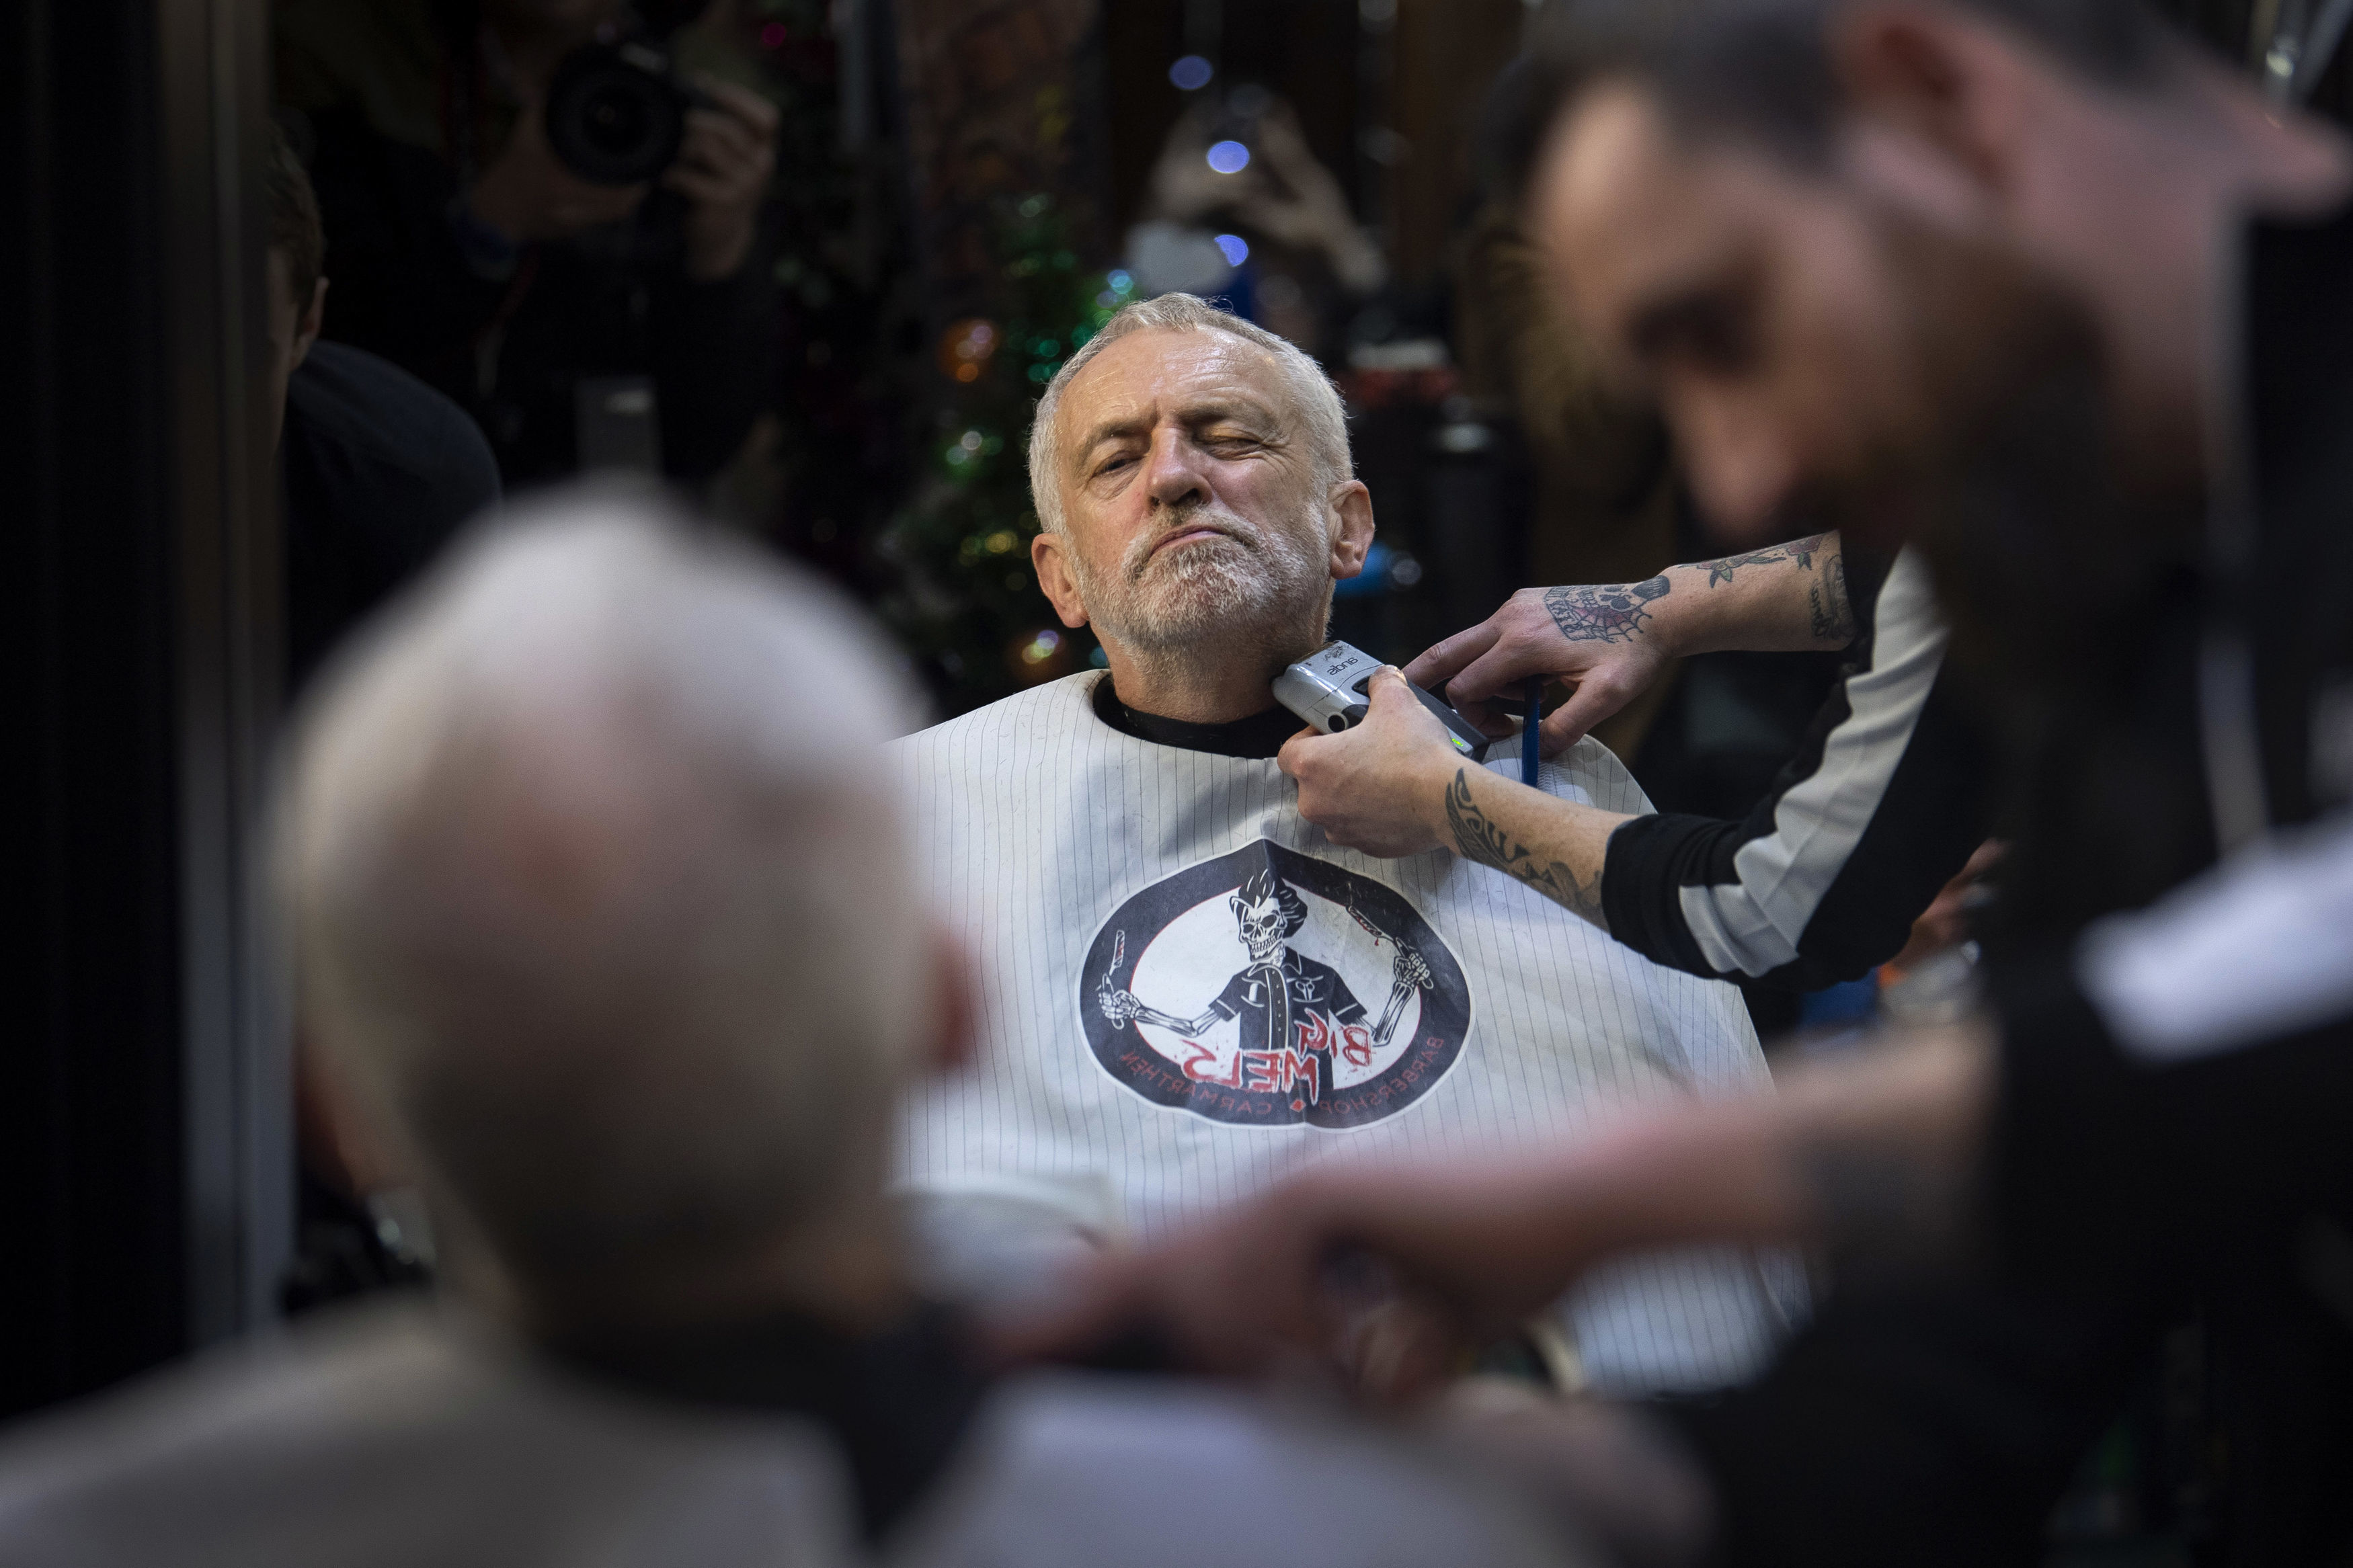 Labour Party leader Jeremy Corbyn in Big Mel's Barbershop, Carmarthen having his beard trimmed, while on the General Election campaign trail in Wales. PA Photo. Picture date: Saturday December 7, 2019. See PA story POLITICS Election. Photo credit should read: Victoria Jones/PA Wire